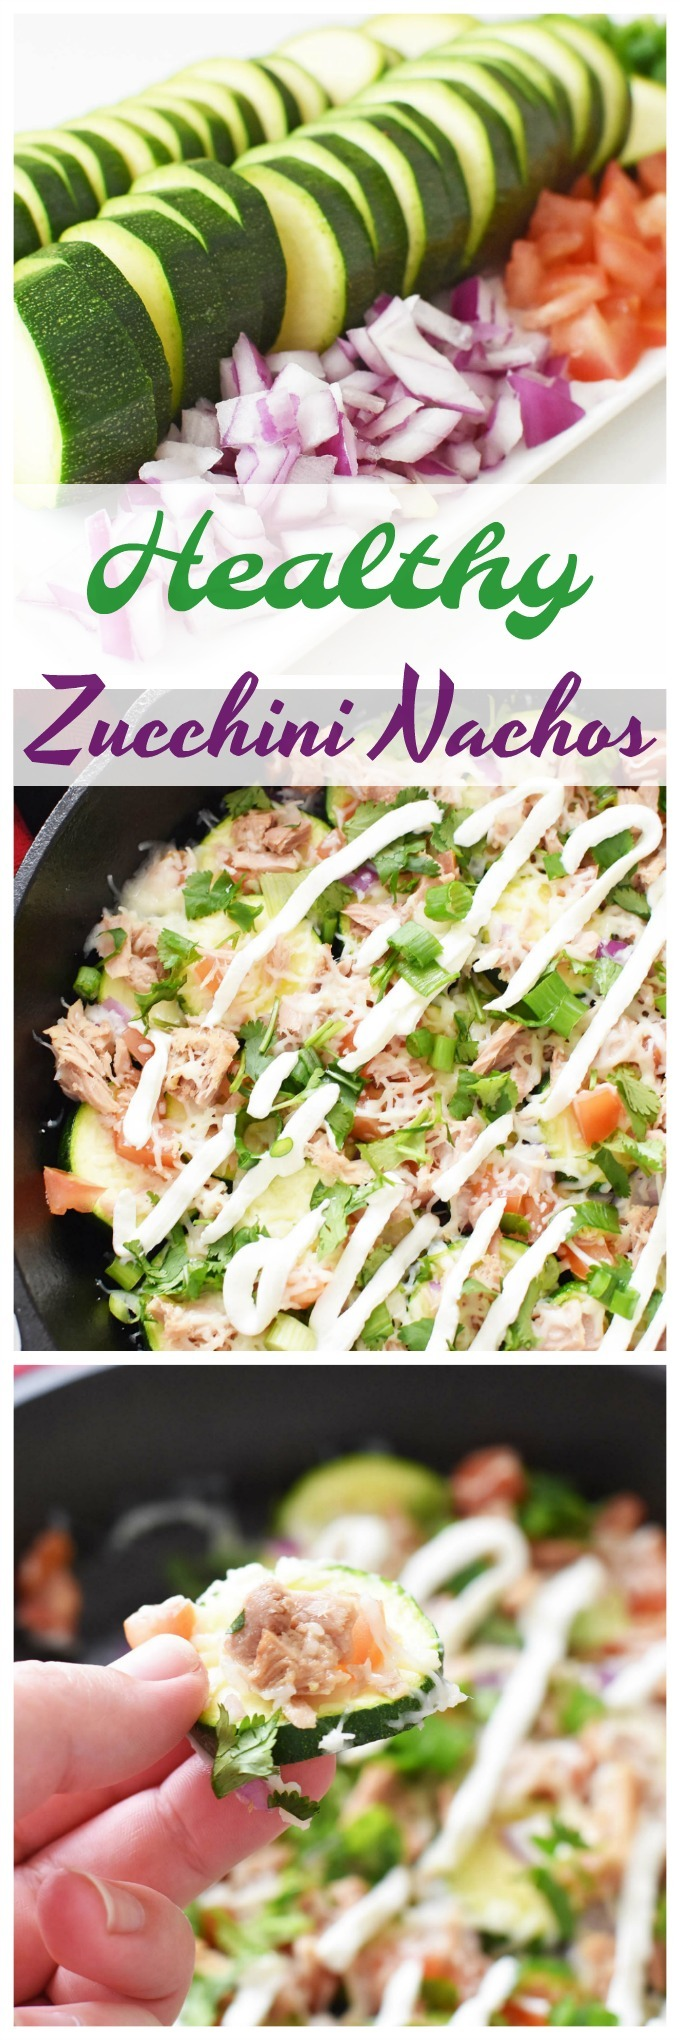 Healthy Zucchini Nachos Recipe